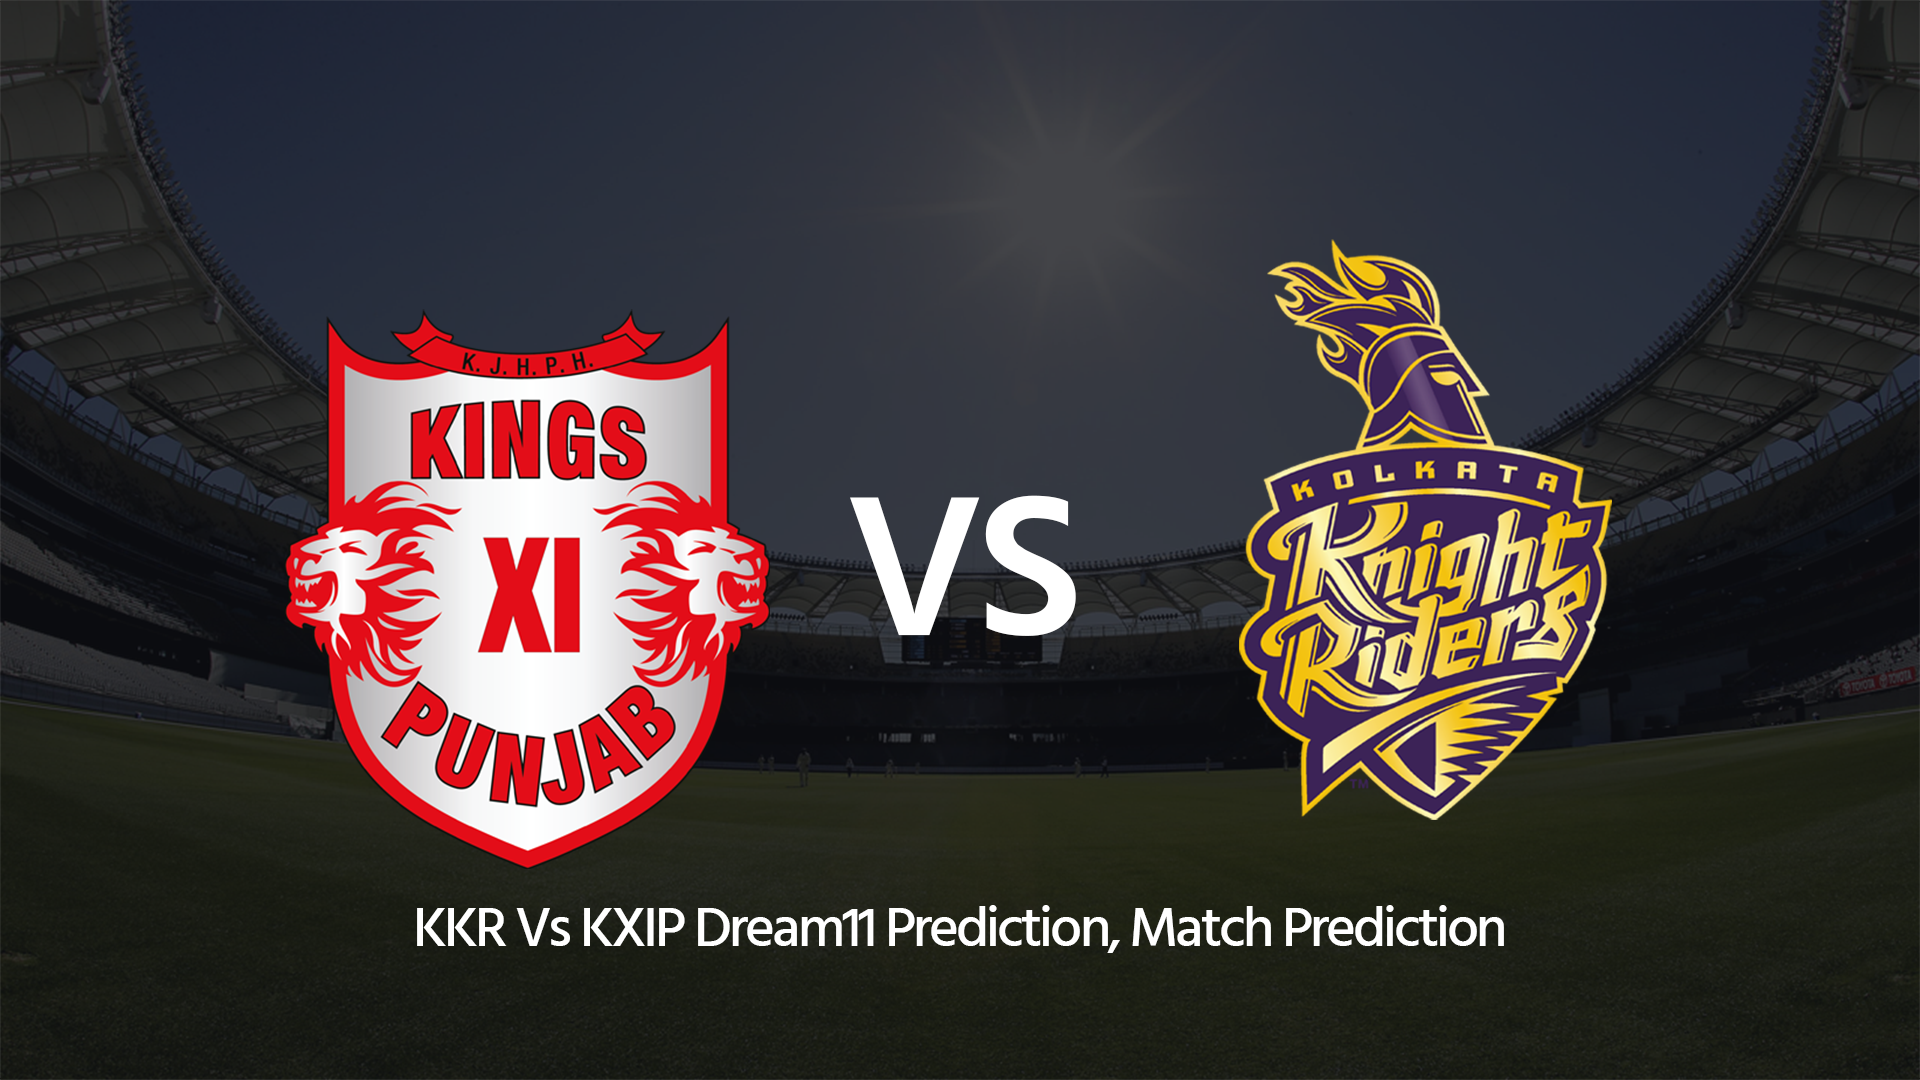 Kkr Vs Kxip Dream11 Prediction Both Teams Have Secured A Win As Kings Eleven Will Square Up Wi Kolkata Knight Riders Knight Rider Royal Challengers Bangalore